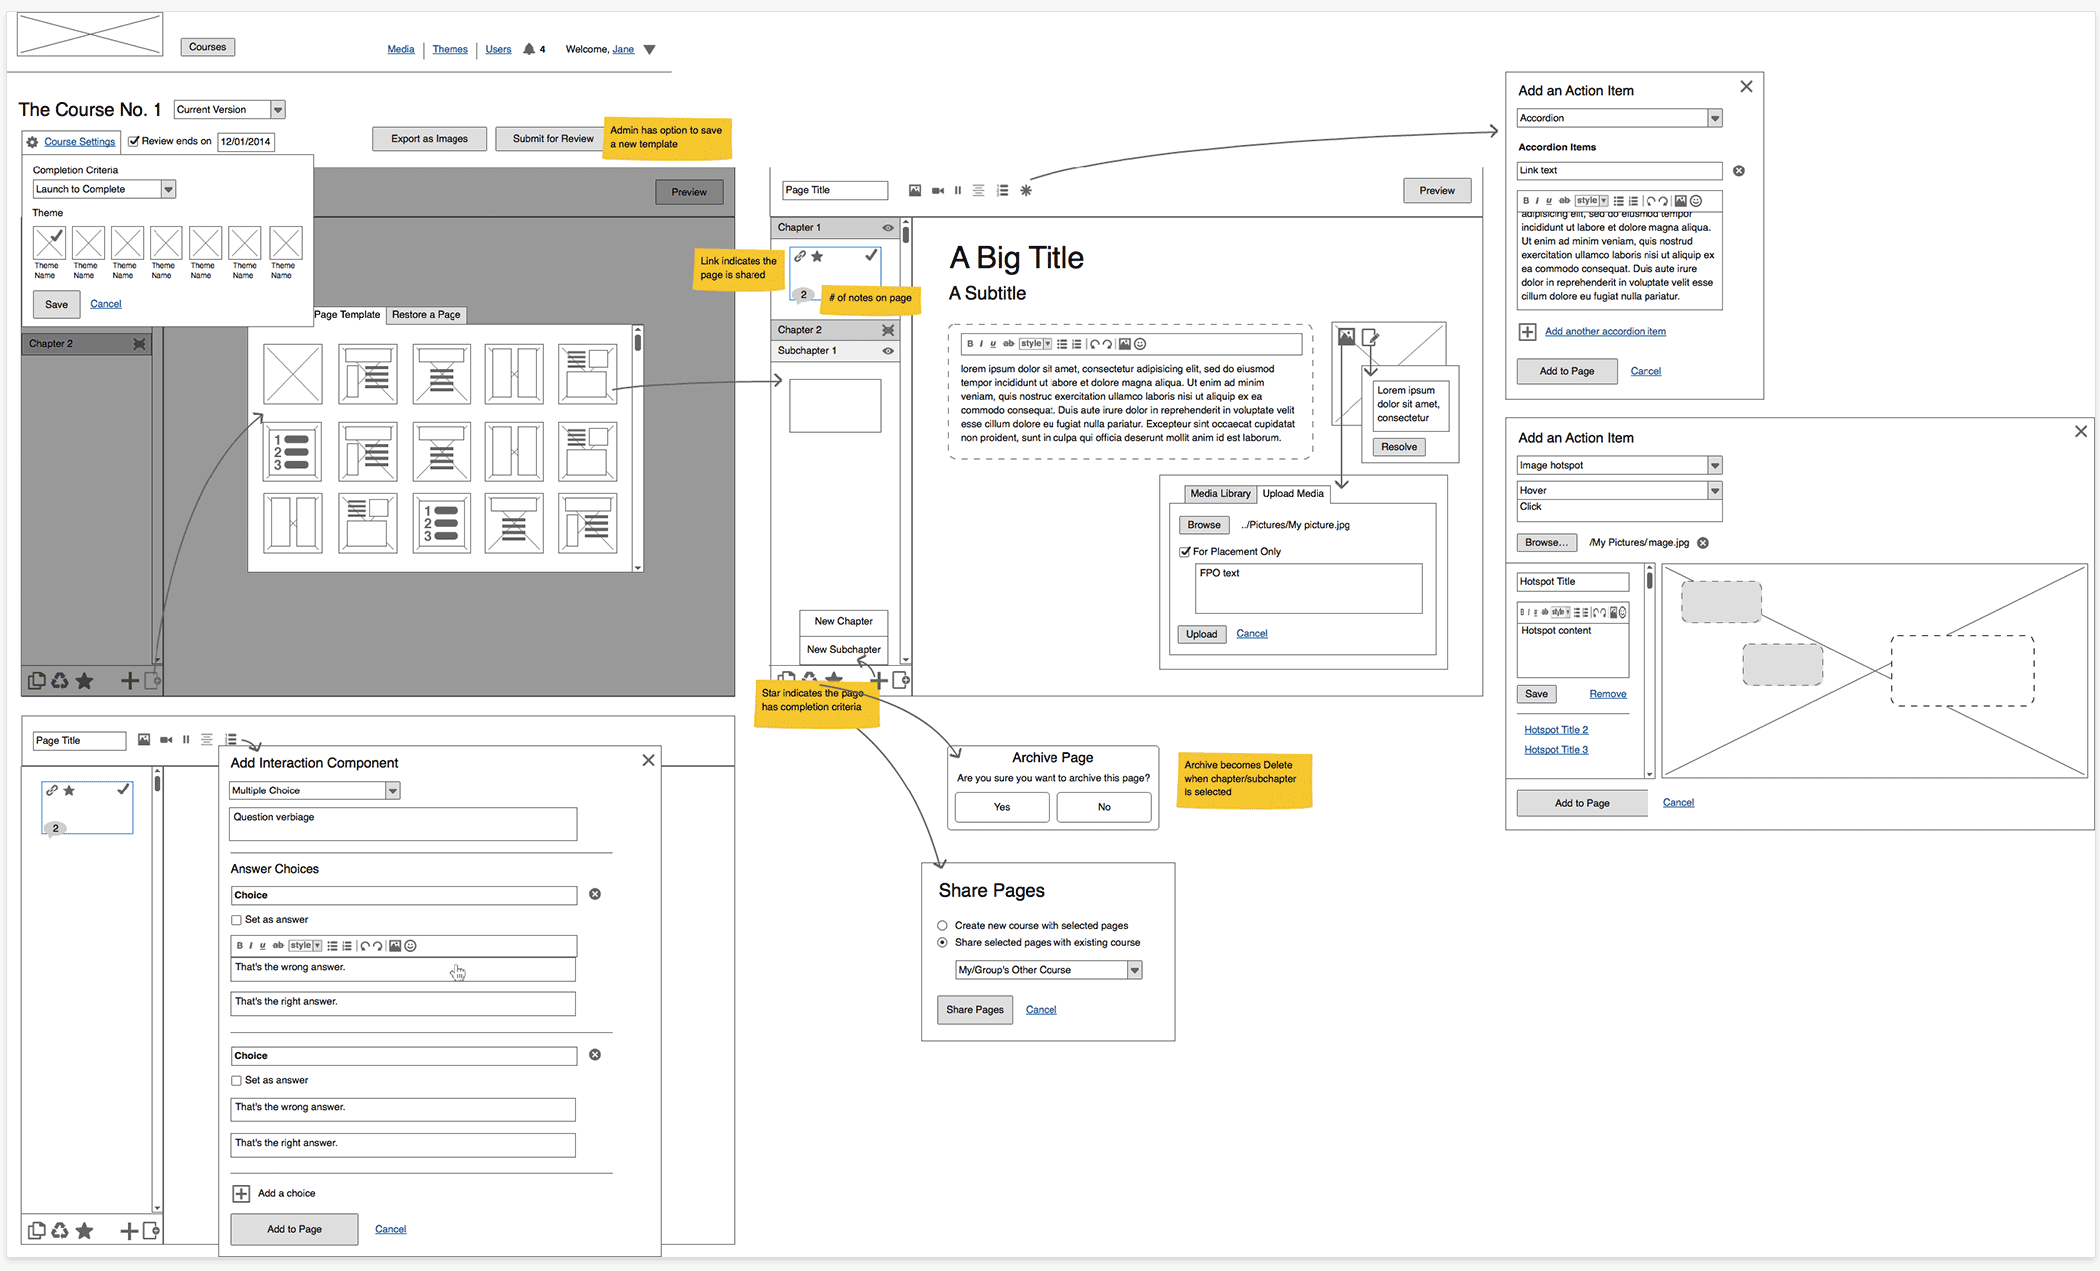 A Regions Bank course builder wireframe